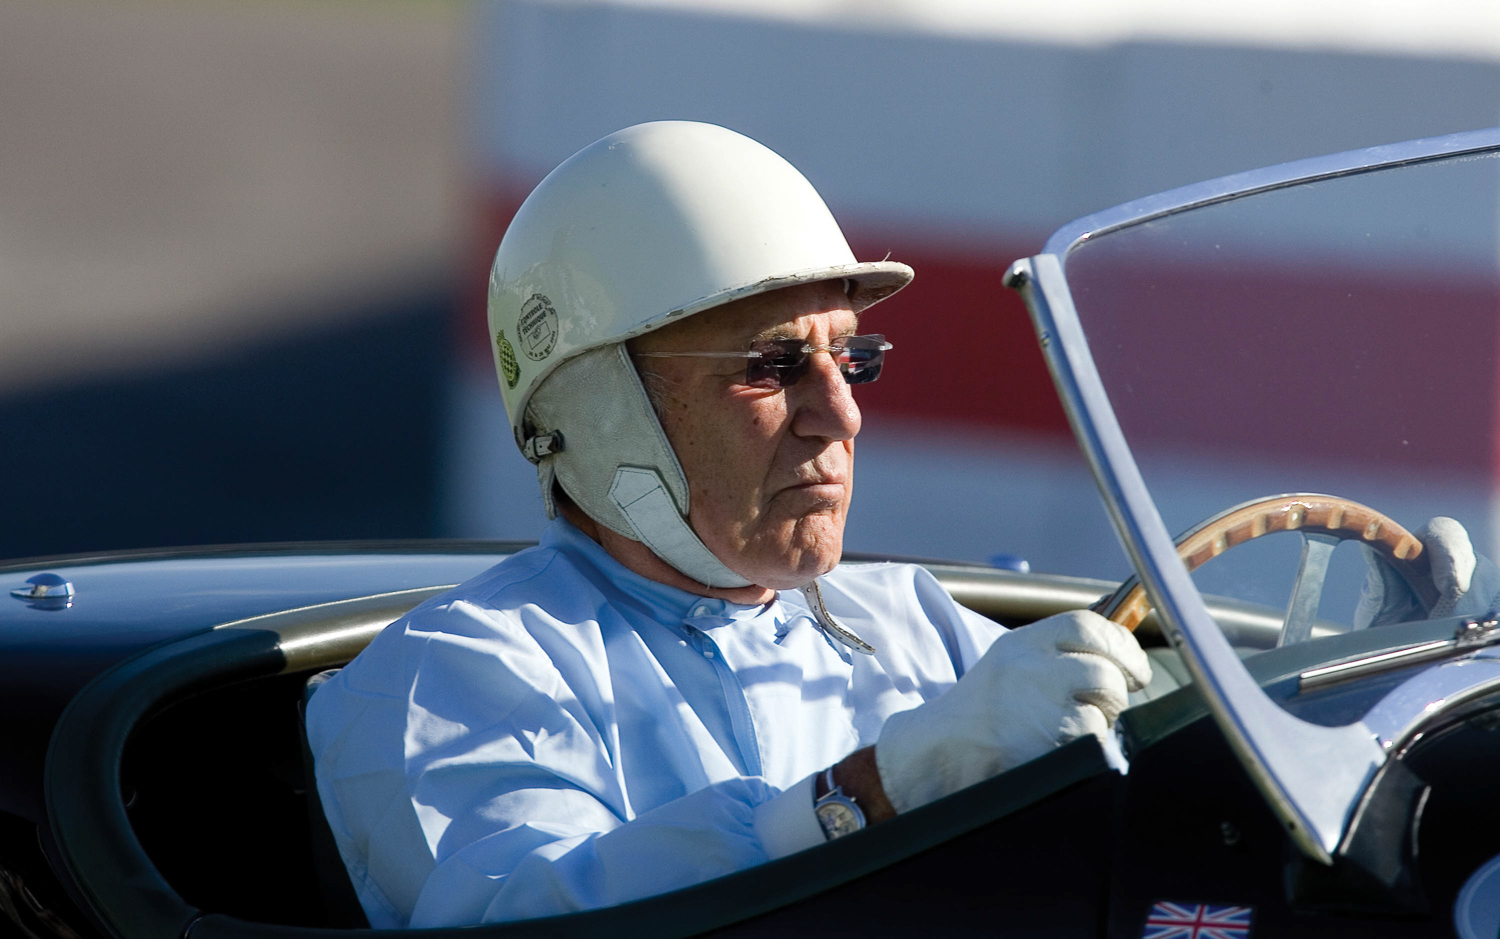 Goodwood Revival - Sir Stirling Moss